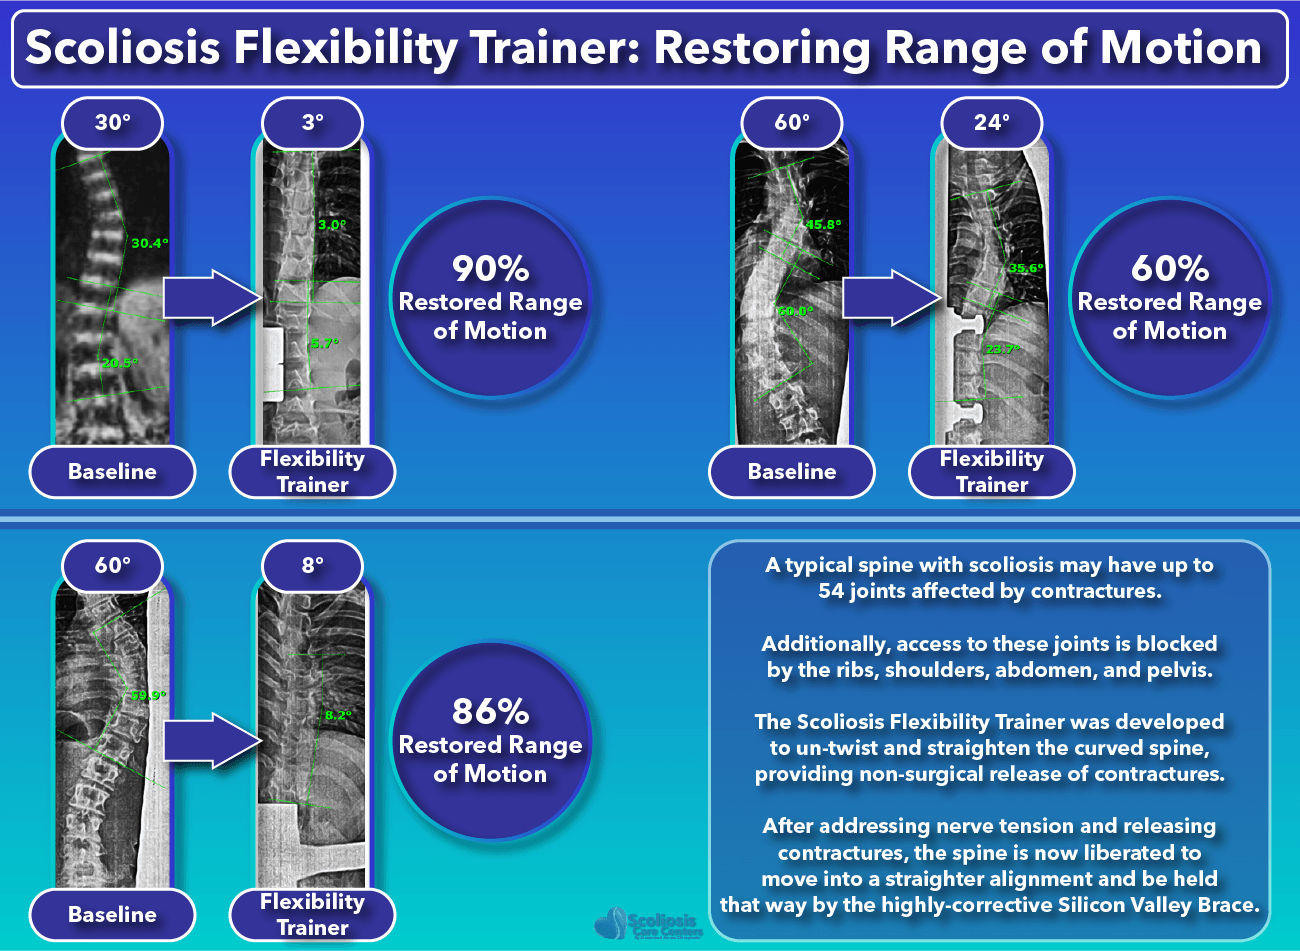 Scoliosis Flexibility Trainer Restored Range of Motion Results